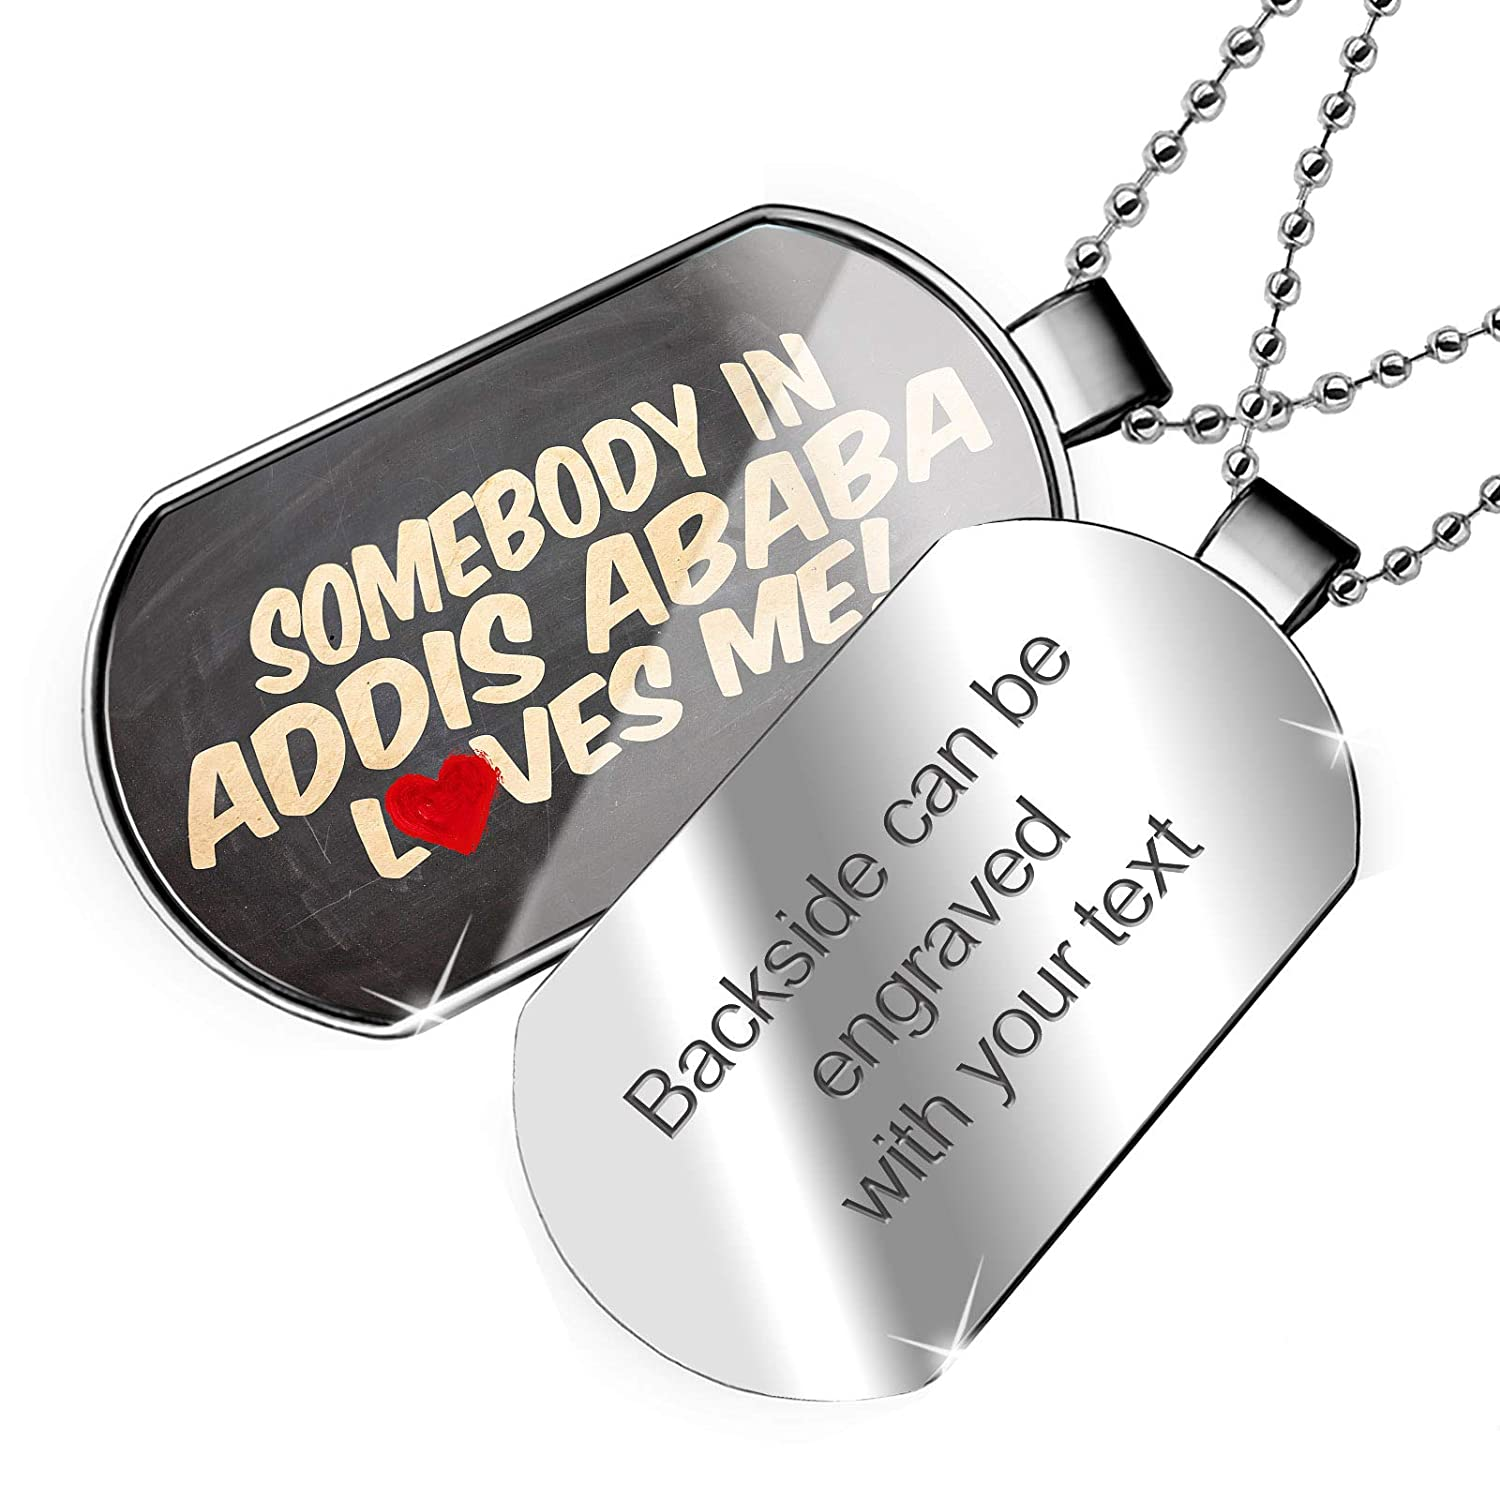 NEONBLOND Personalized Name Engraved Somebody in Addis Ababa Loves me Ethiopia Dogtag Necklace